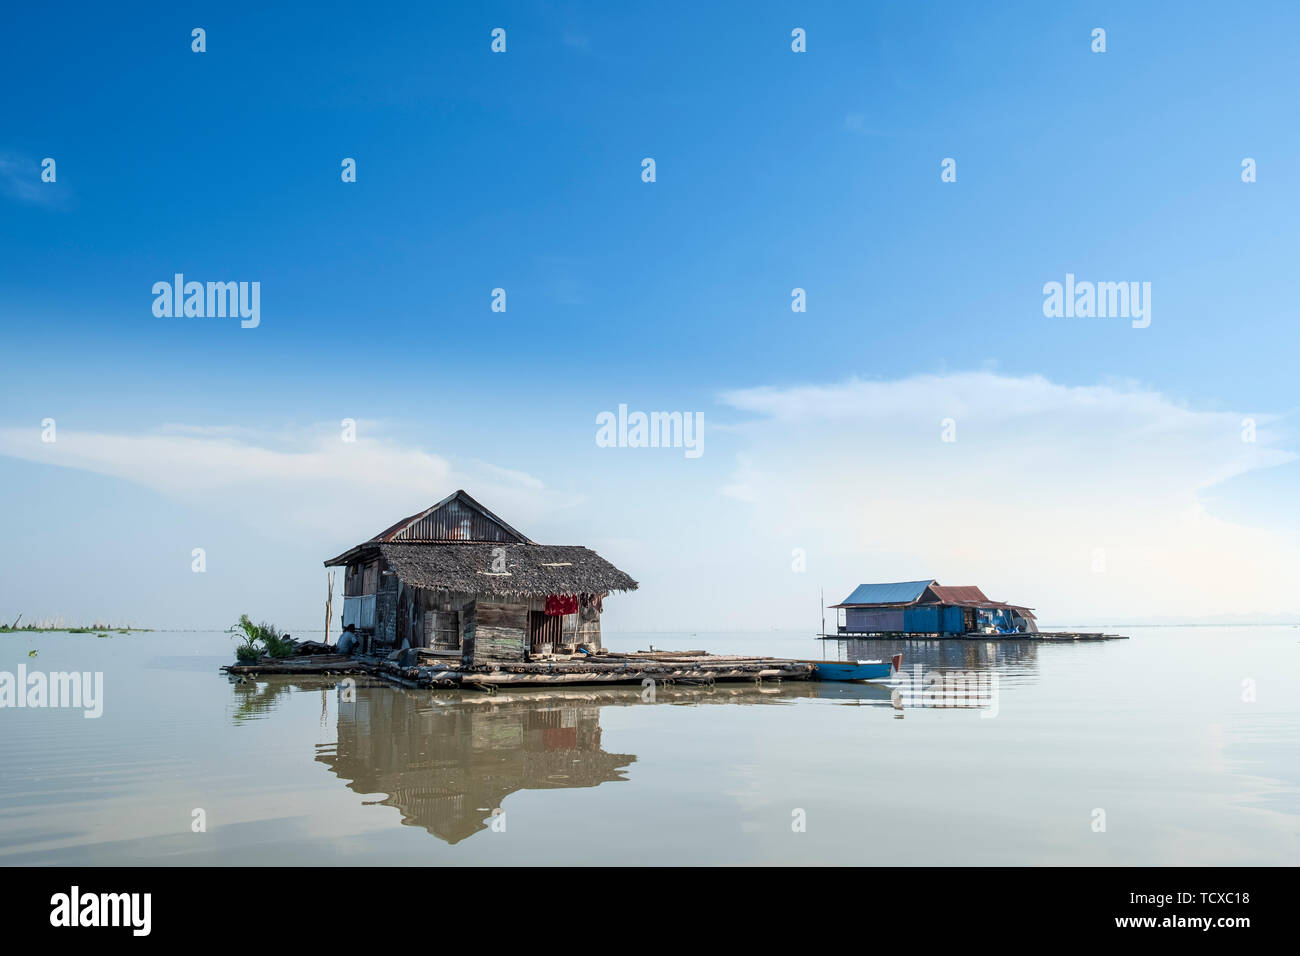 Floating houses on the lake, Lake Tempe, Sengkang, Indonesia, Southeast Asia, Asia - Stock Image